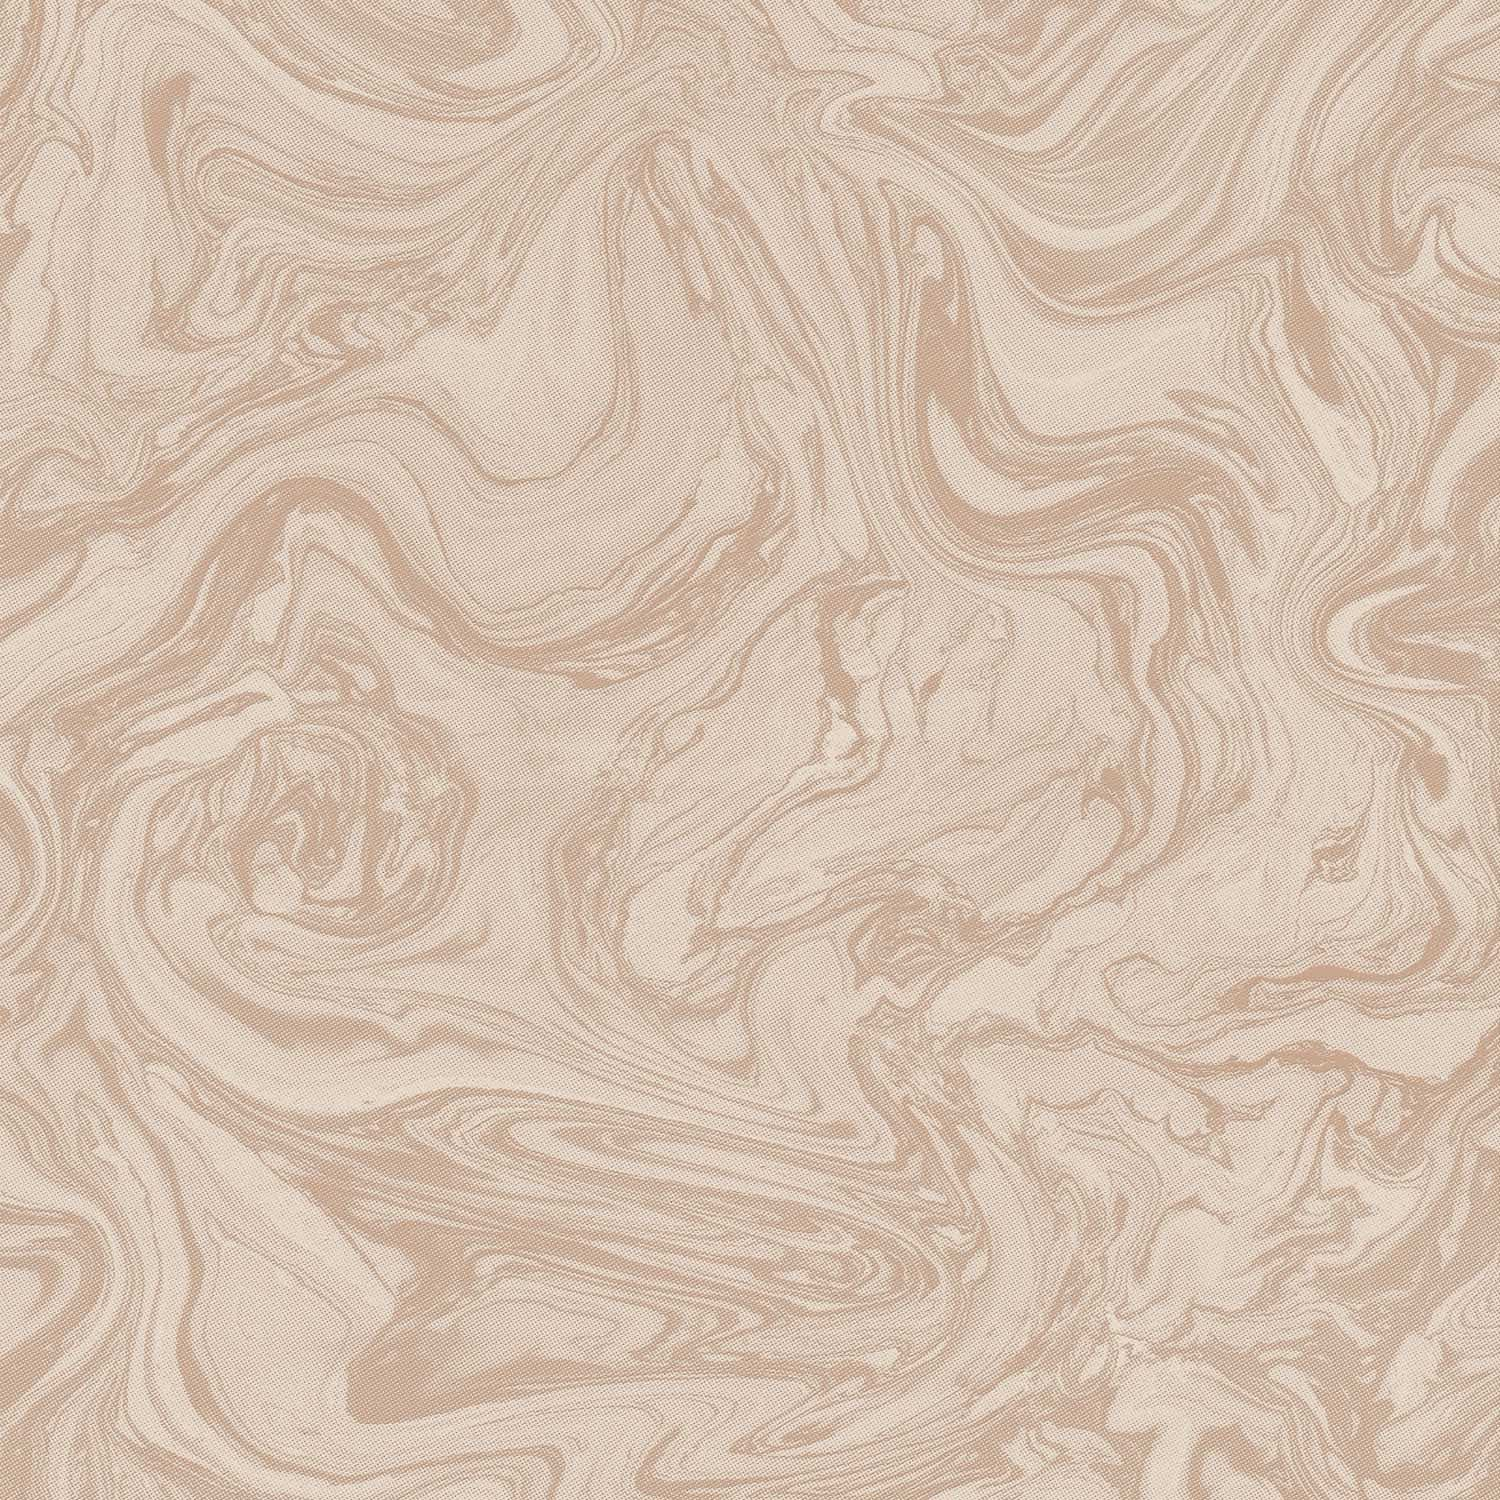 Beautiful Wallpaper Marble Cream - marble_effect_wallpaper_in_rose_gold_2  Graphic_274156.jpg?v\u003d1518561077